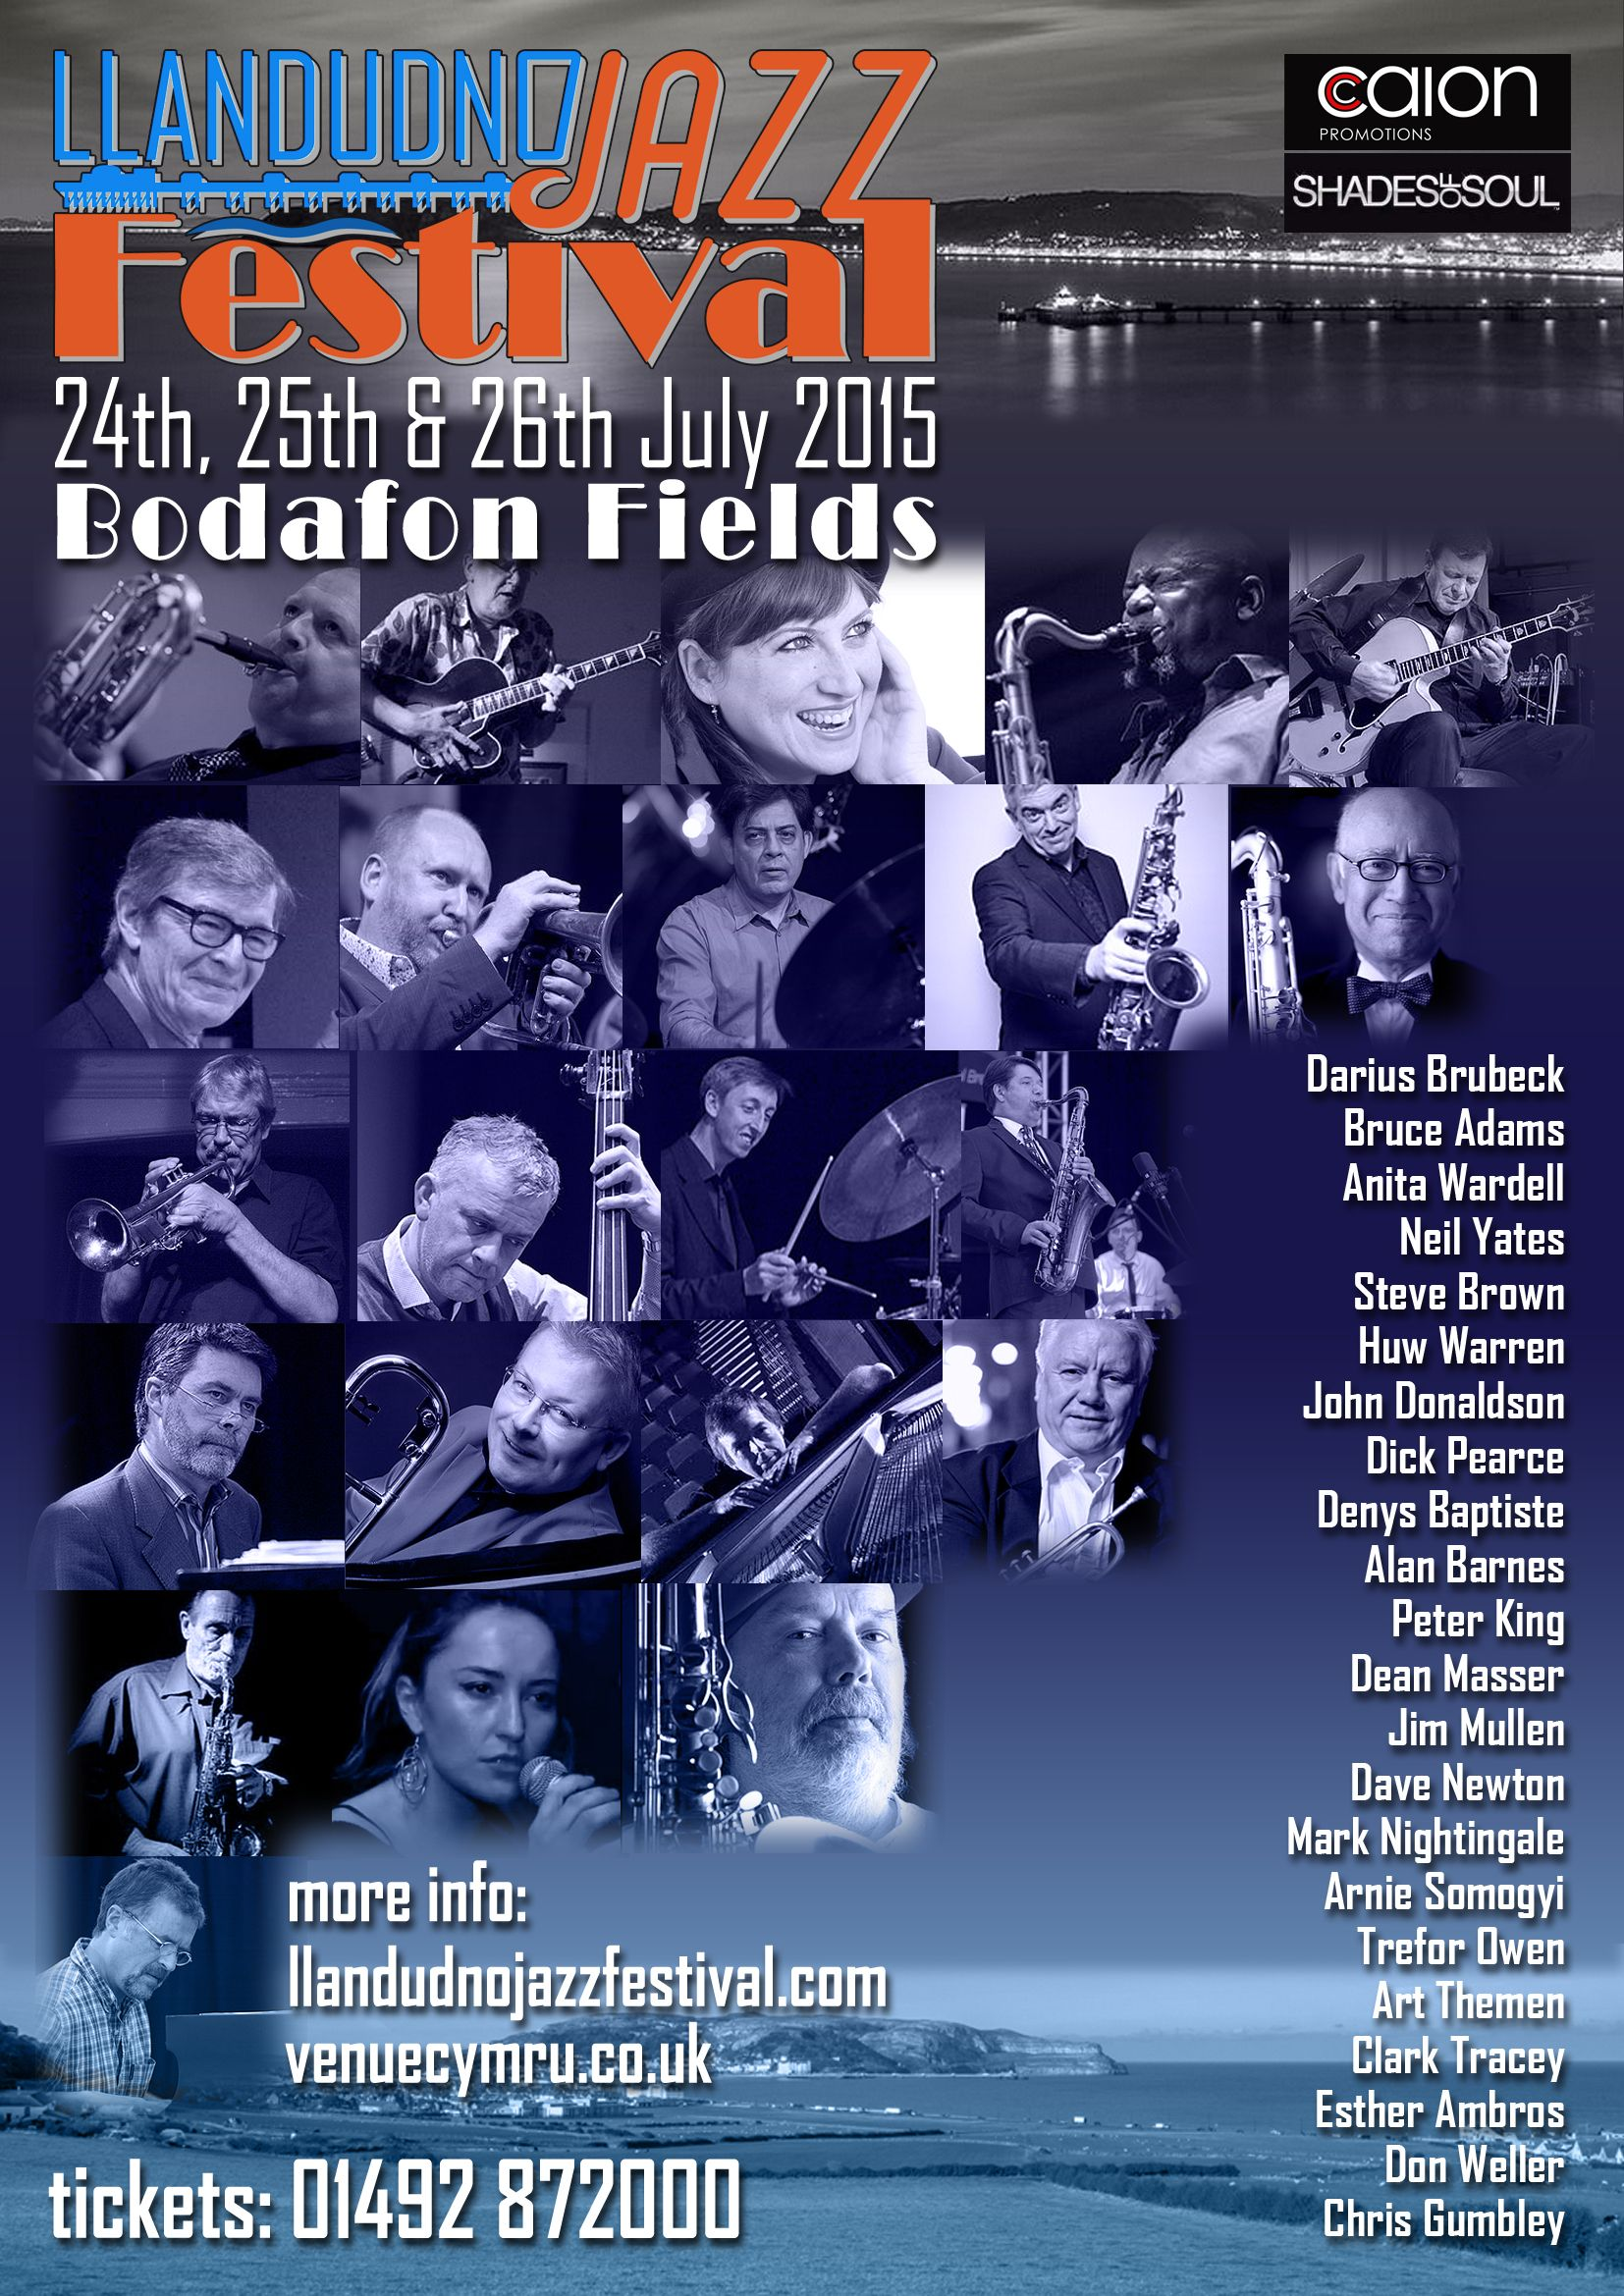 88c9581015ea90f75ad0ff63826be87a - Jazz In The Gardens 2015 Artists